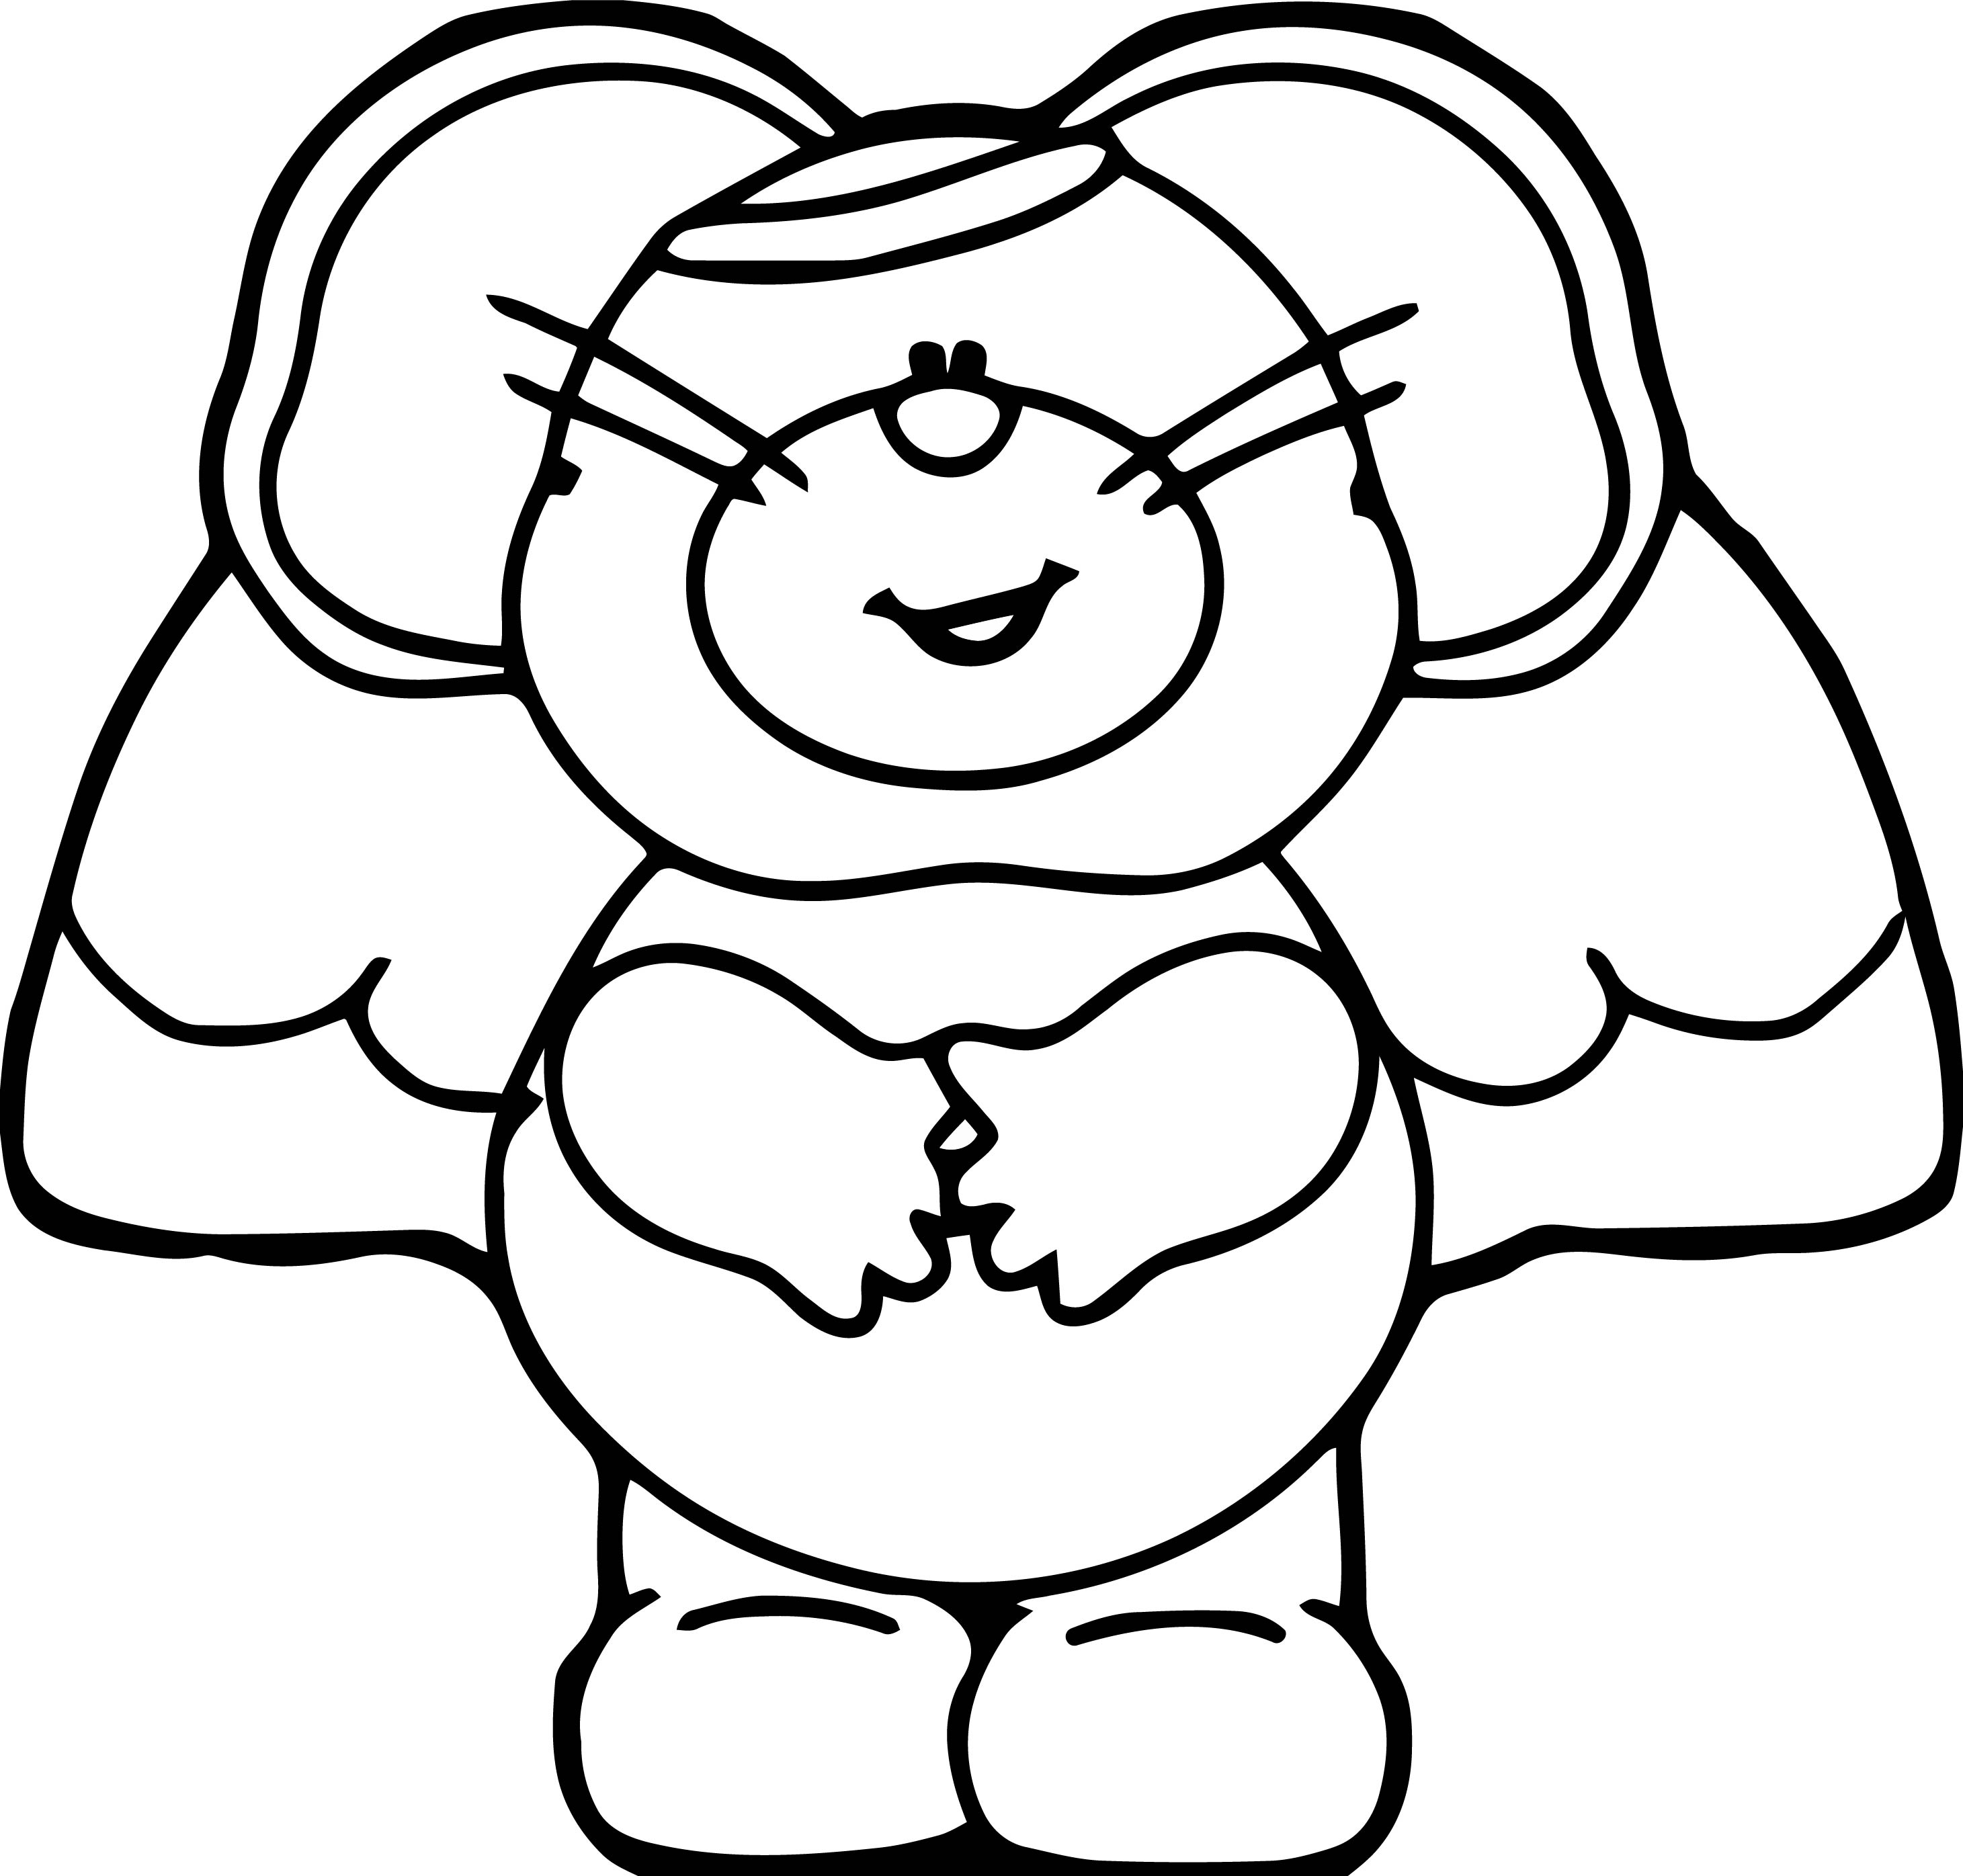 Mouse Jpeg Coloring Page 098